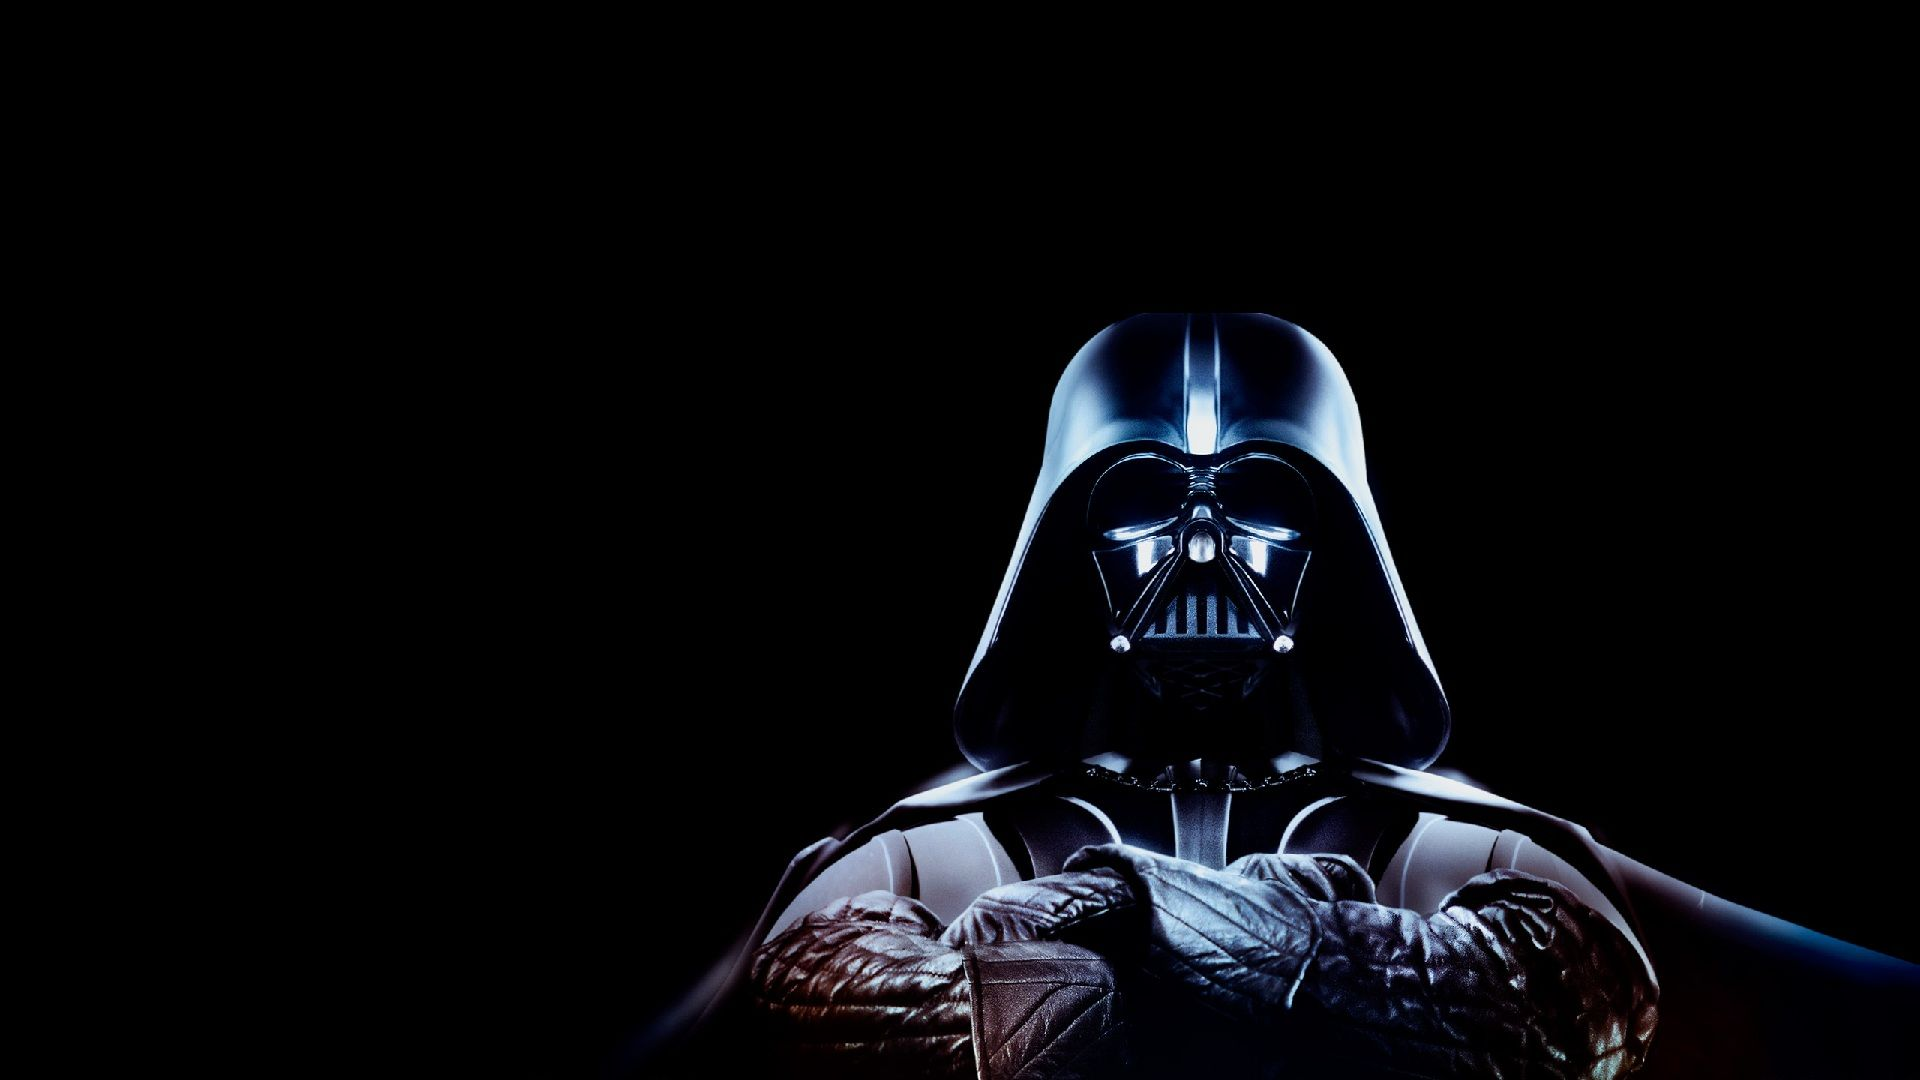 star wars wallpaper in hd 1080p resolution images